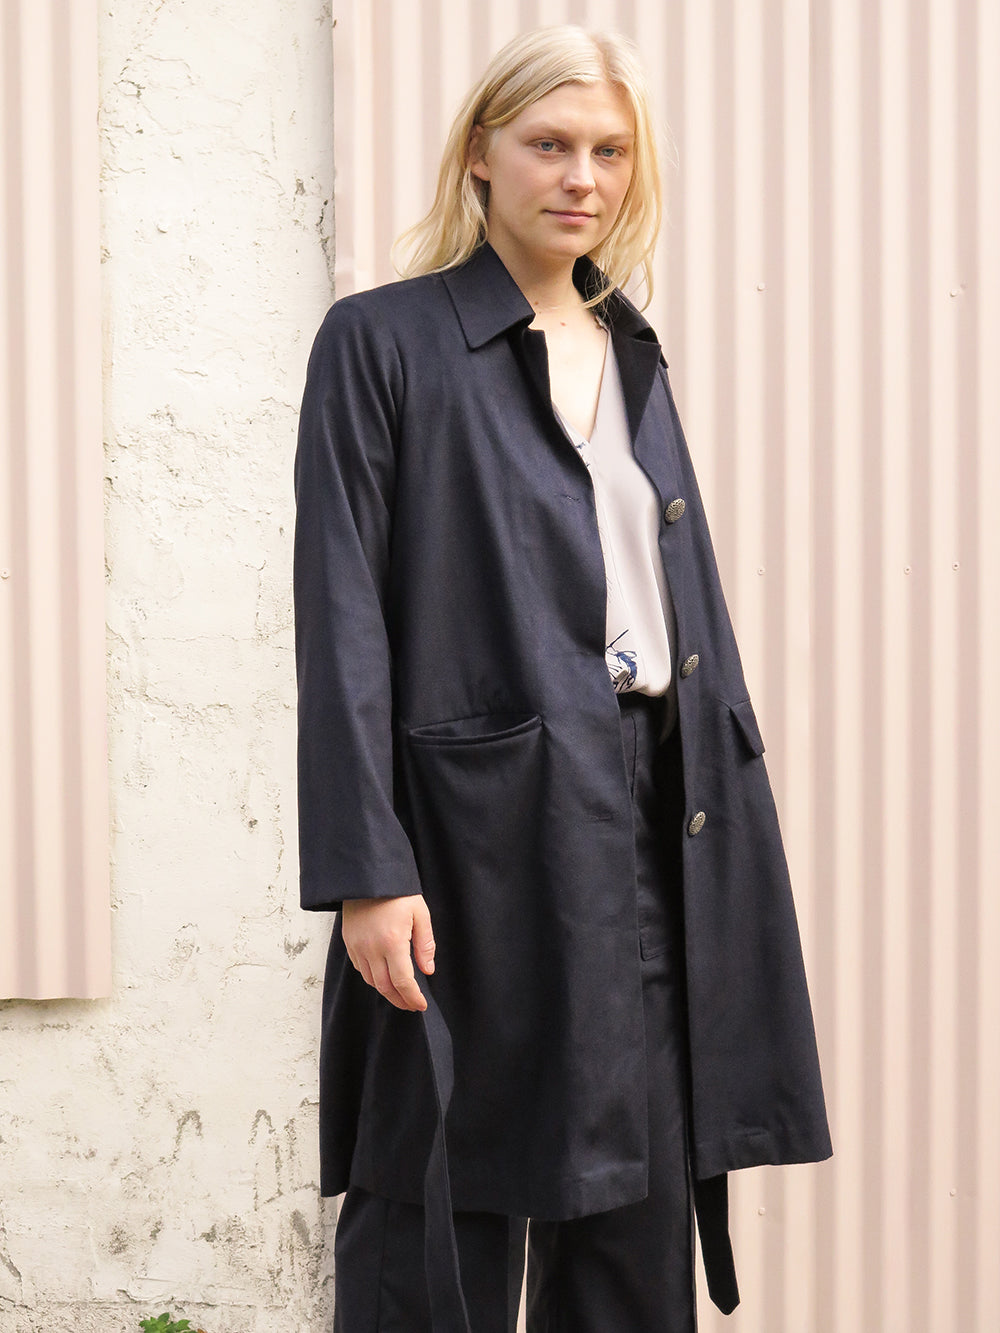 mateo jacket in navy